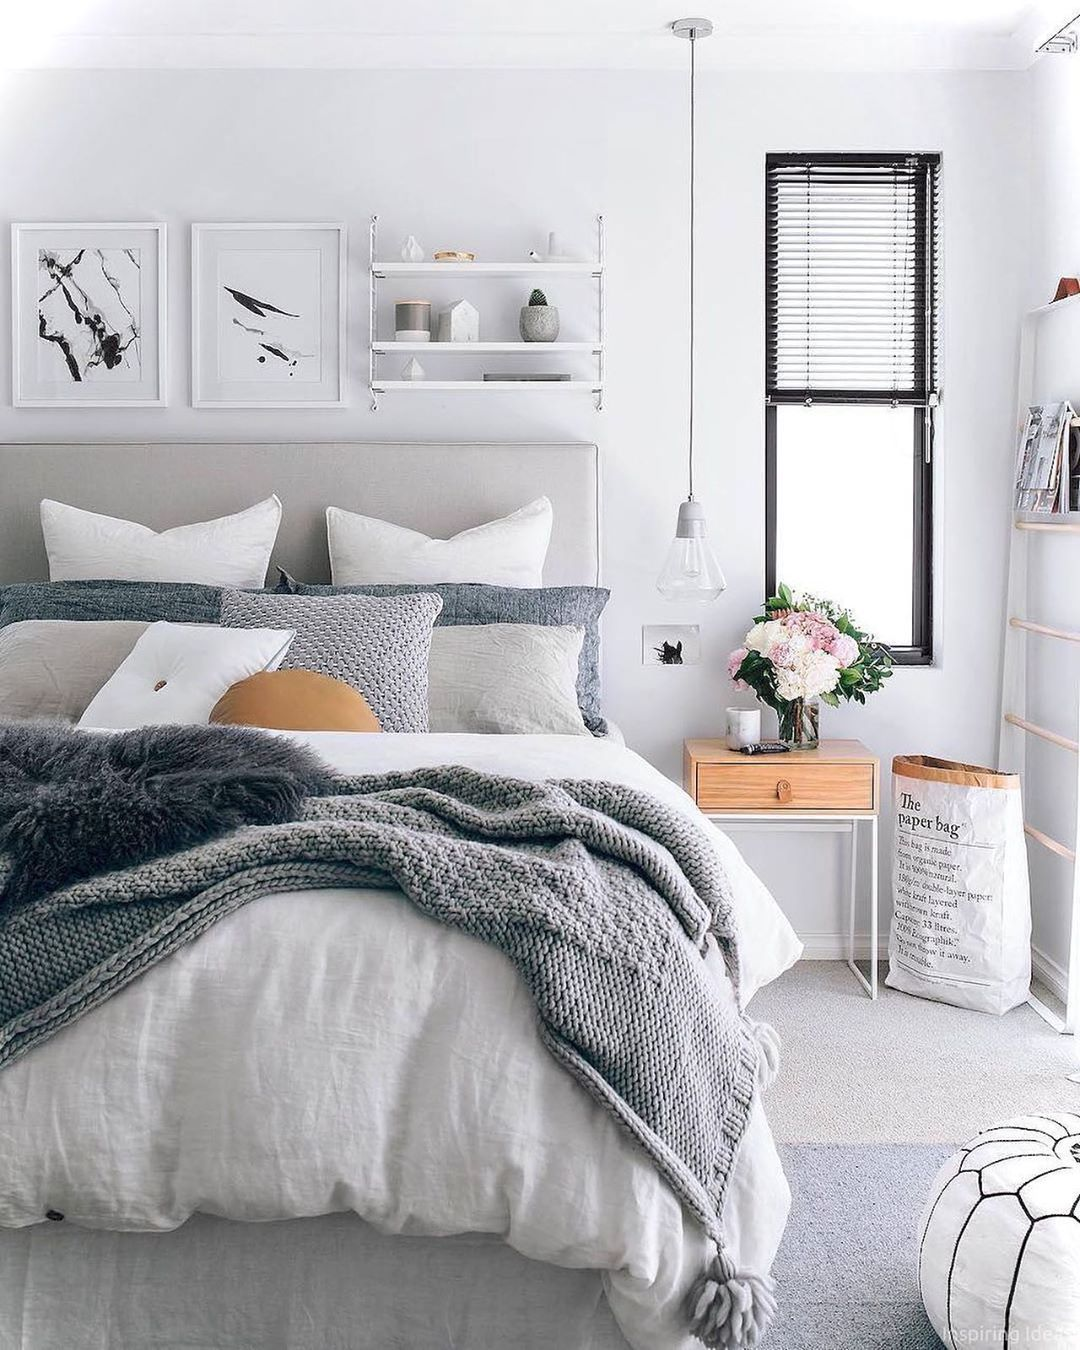 Nordic Home Decor On Instagram Cozy Bed Inspo Because It S Here In New Zealand Credits Pin Home Decor Bedroom Bedroom Interior Master Bedrooms Decor